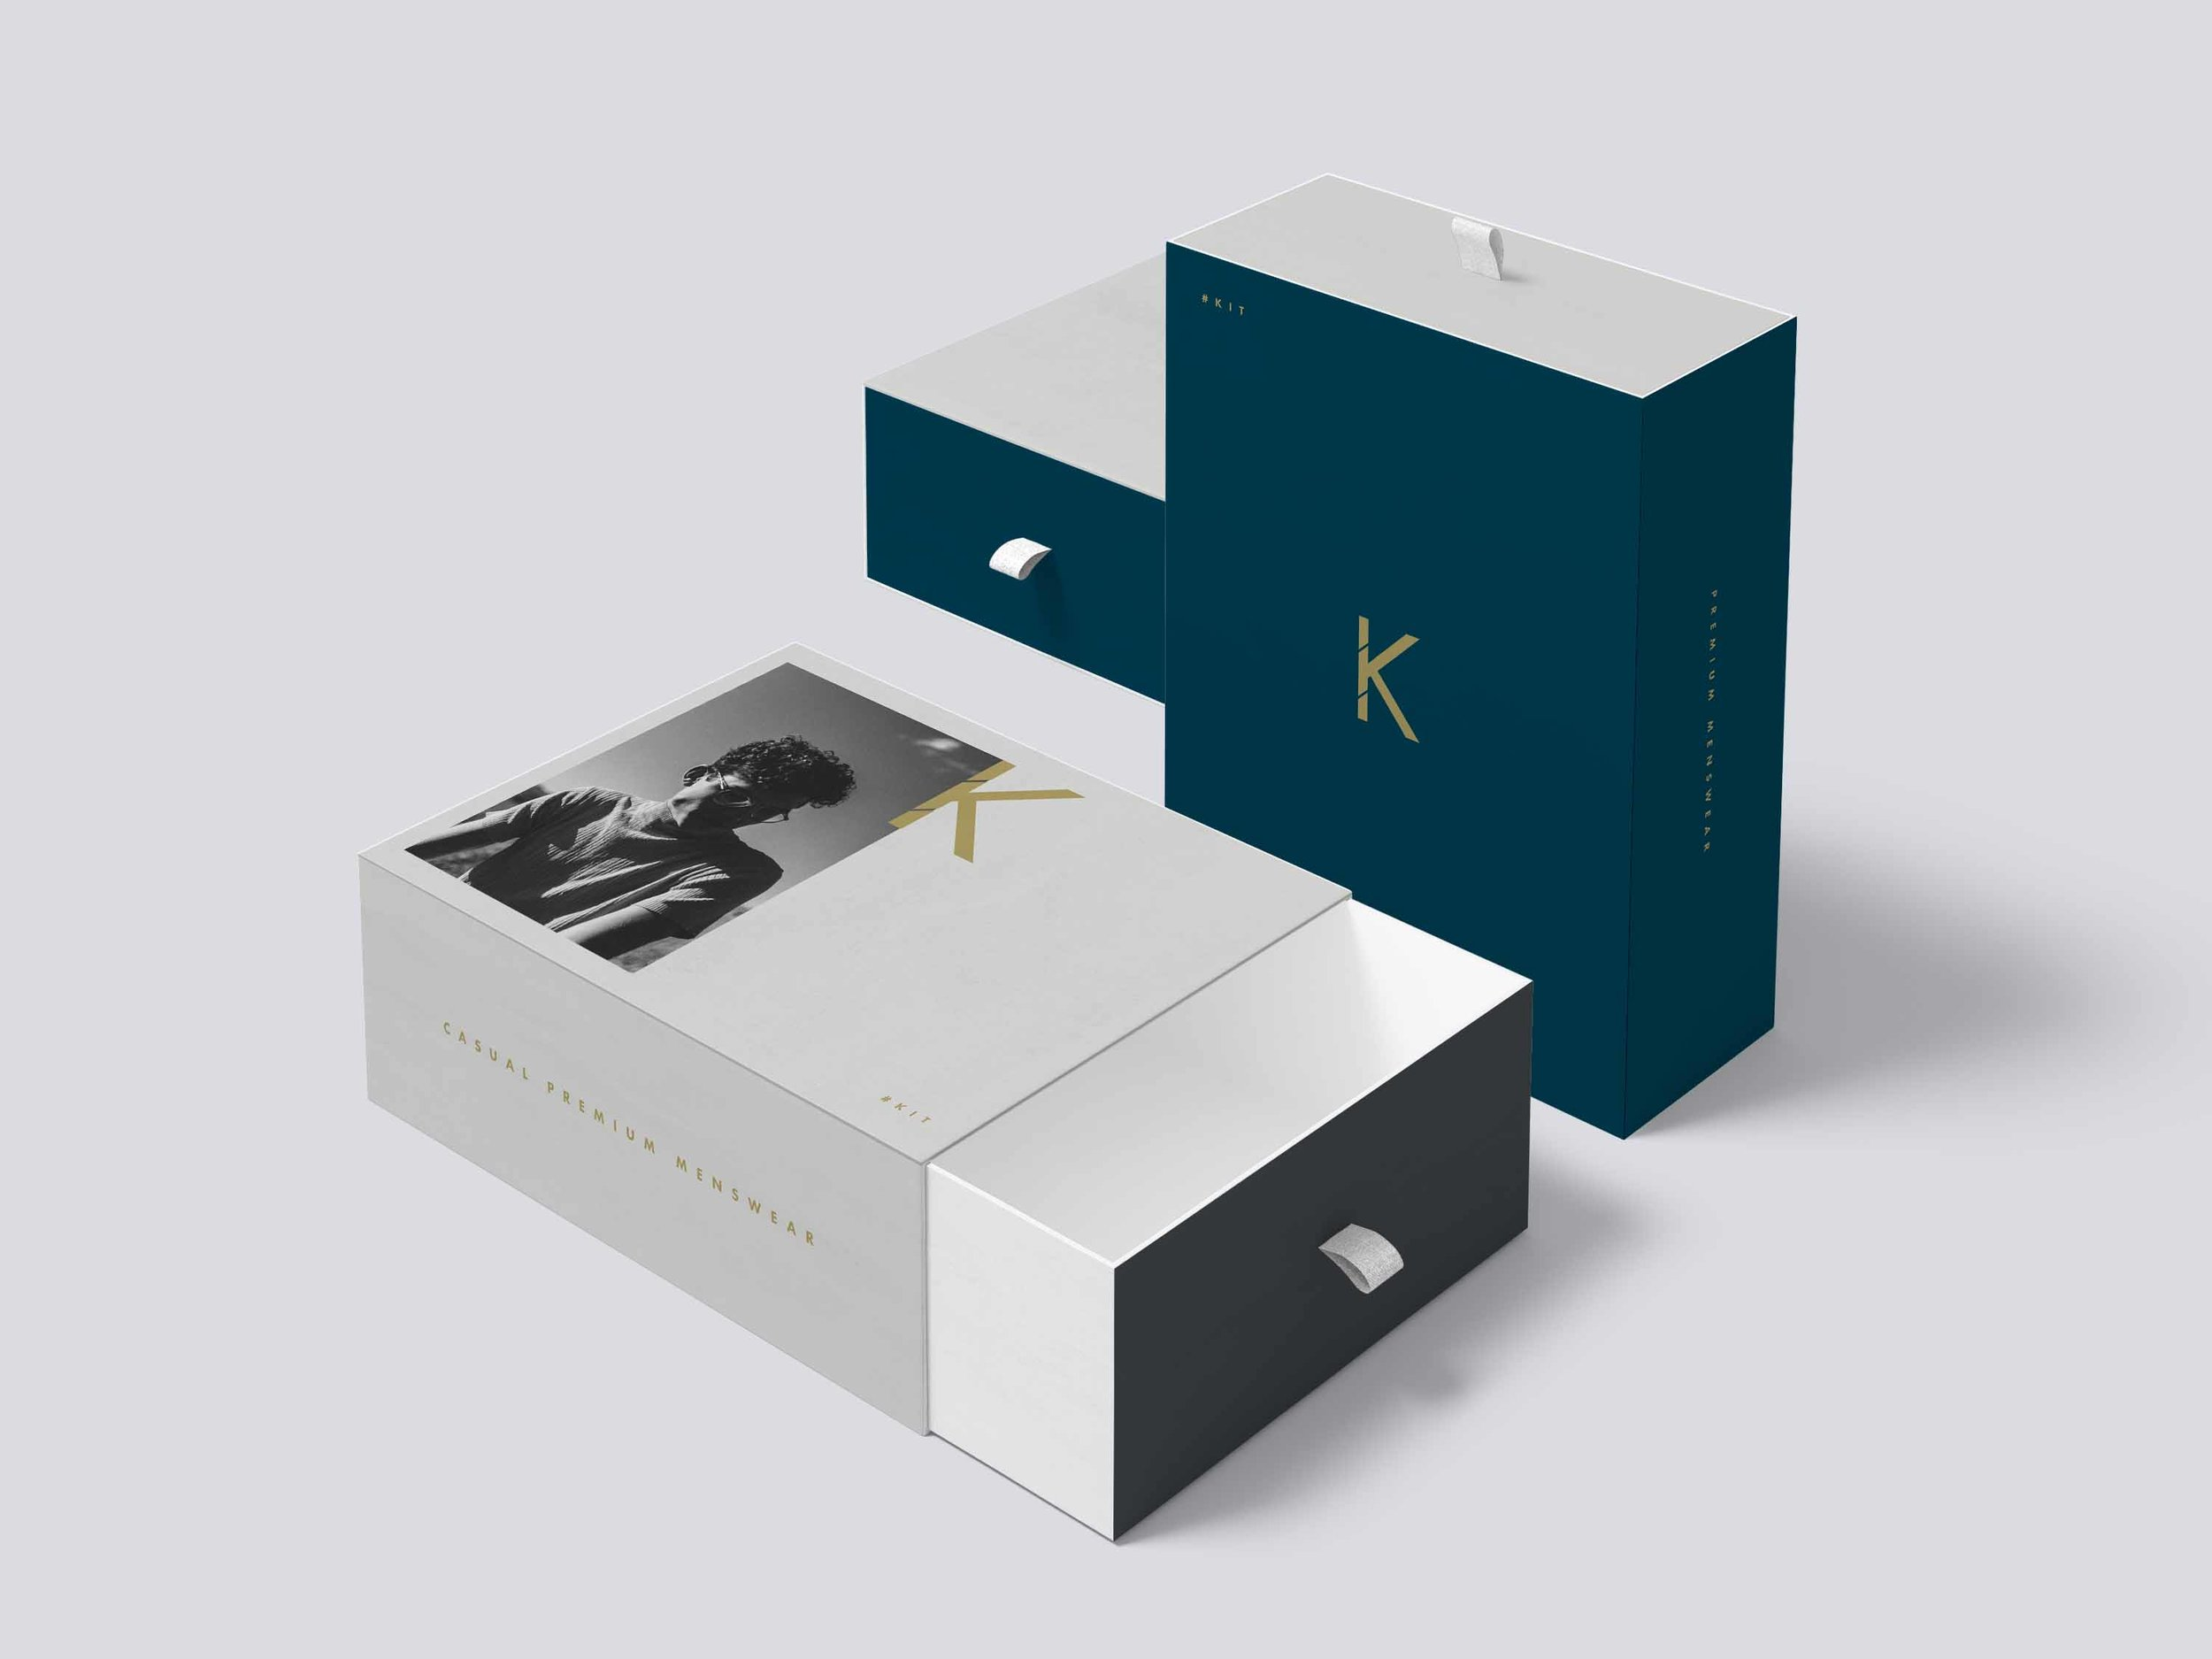 Kit - Cardboard packaging for shoes and shirts. No plastic is used for the premium brand.